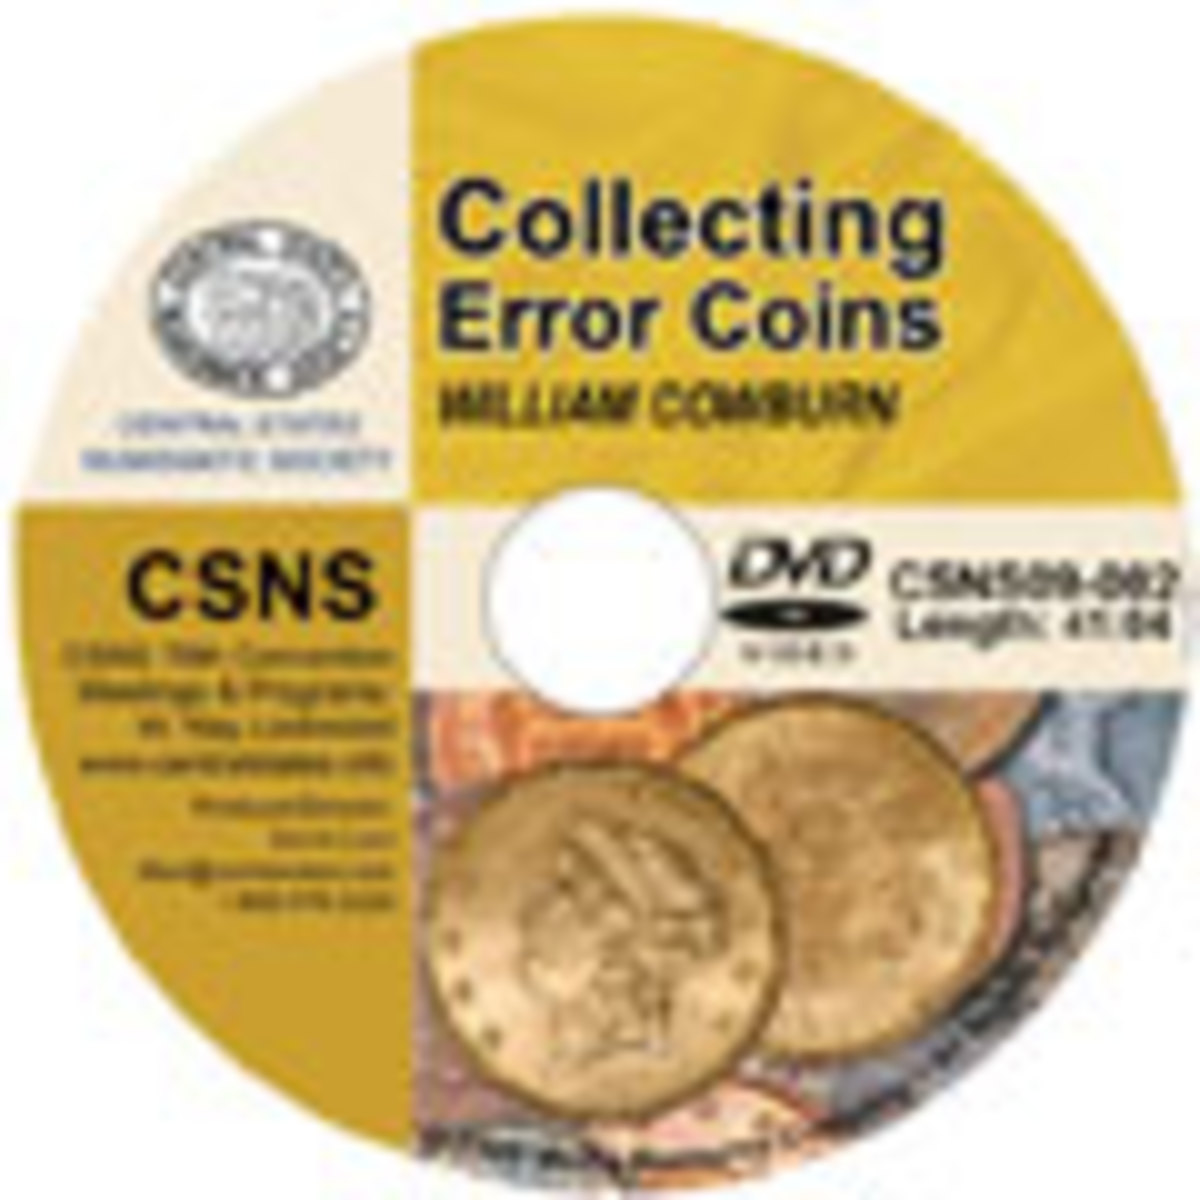 Collecting Error Coins